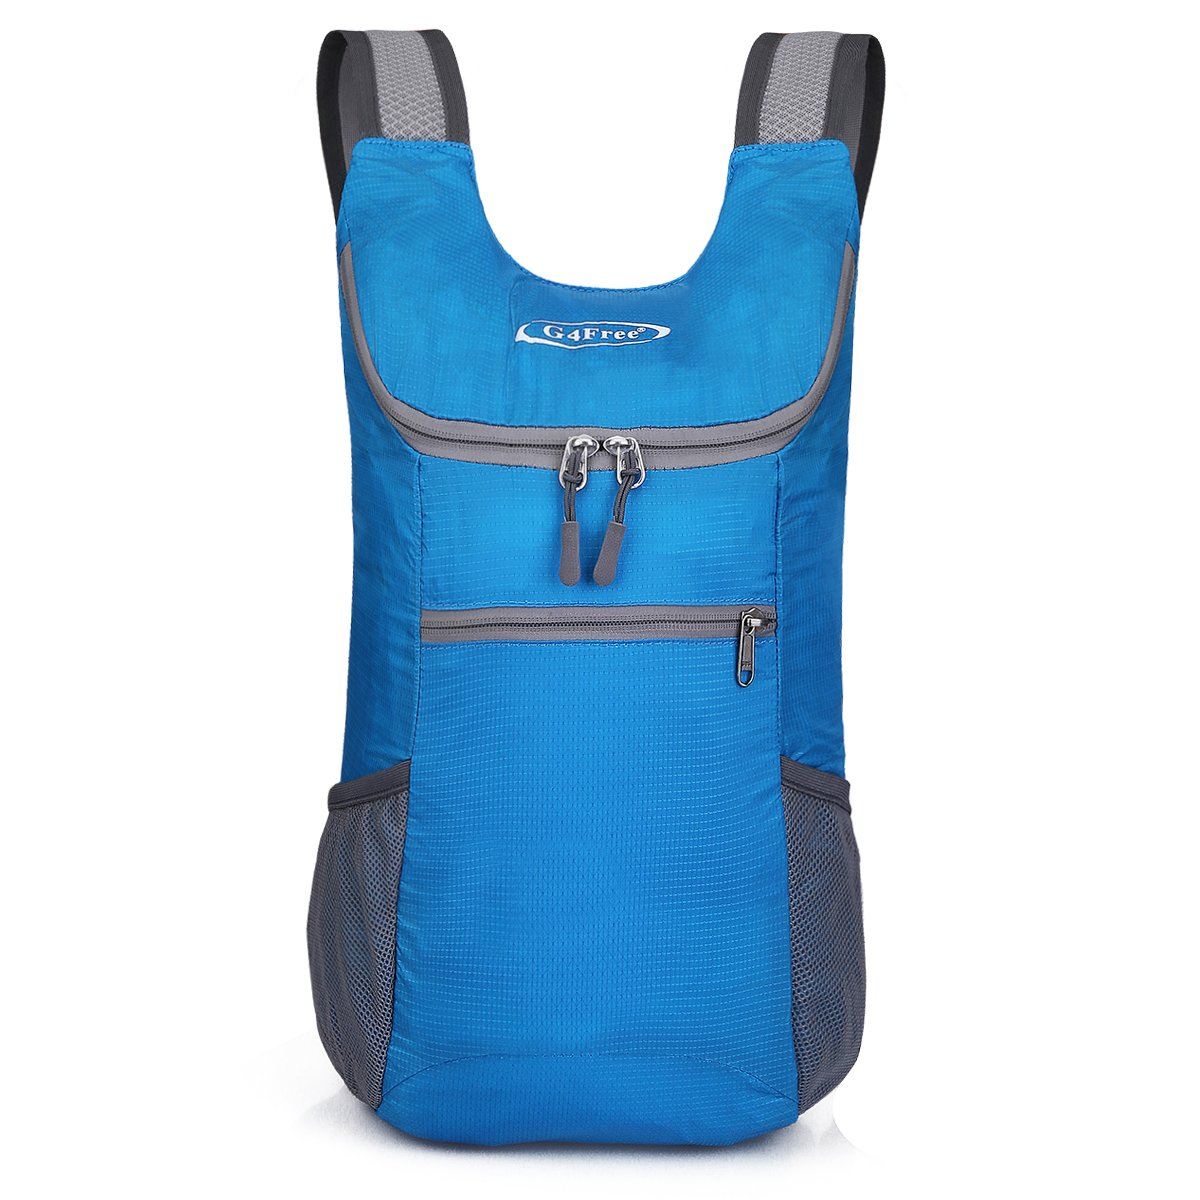 G4Free Lightweight Packable Shoulder Backpack Hiking Daypacks Small Casual Foldable Camping Outdoor Bag for Adults Kids 11L(Blue) by G4Free (Image #2)